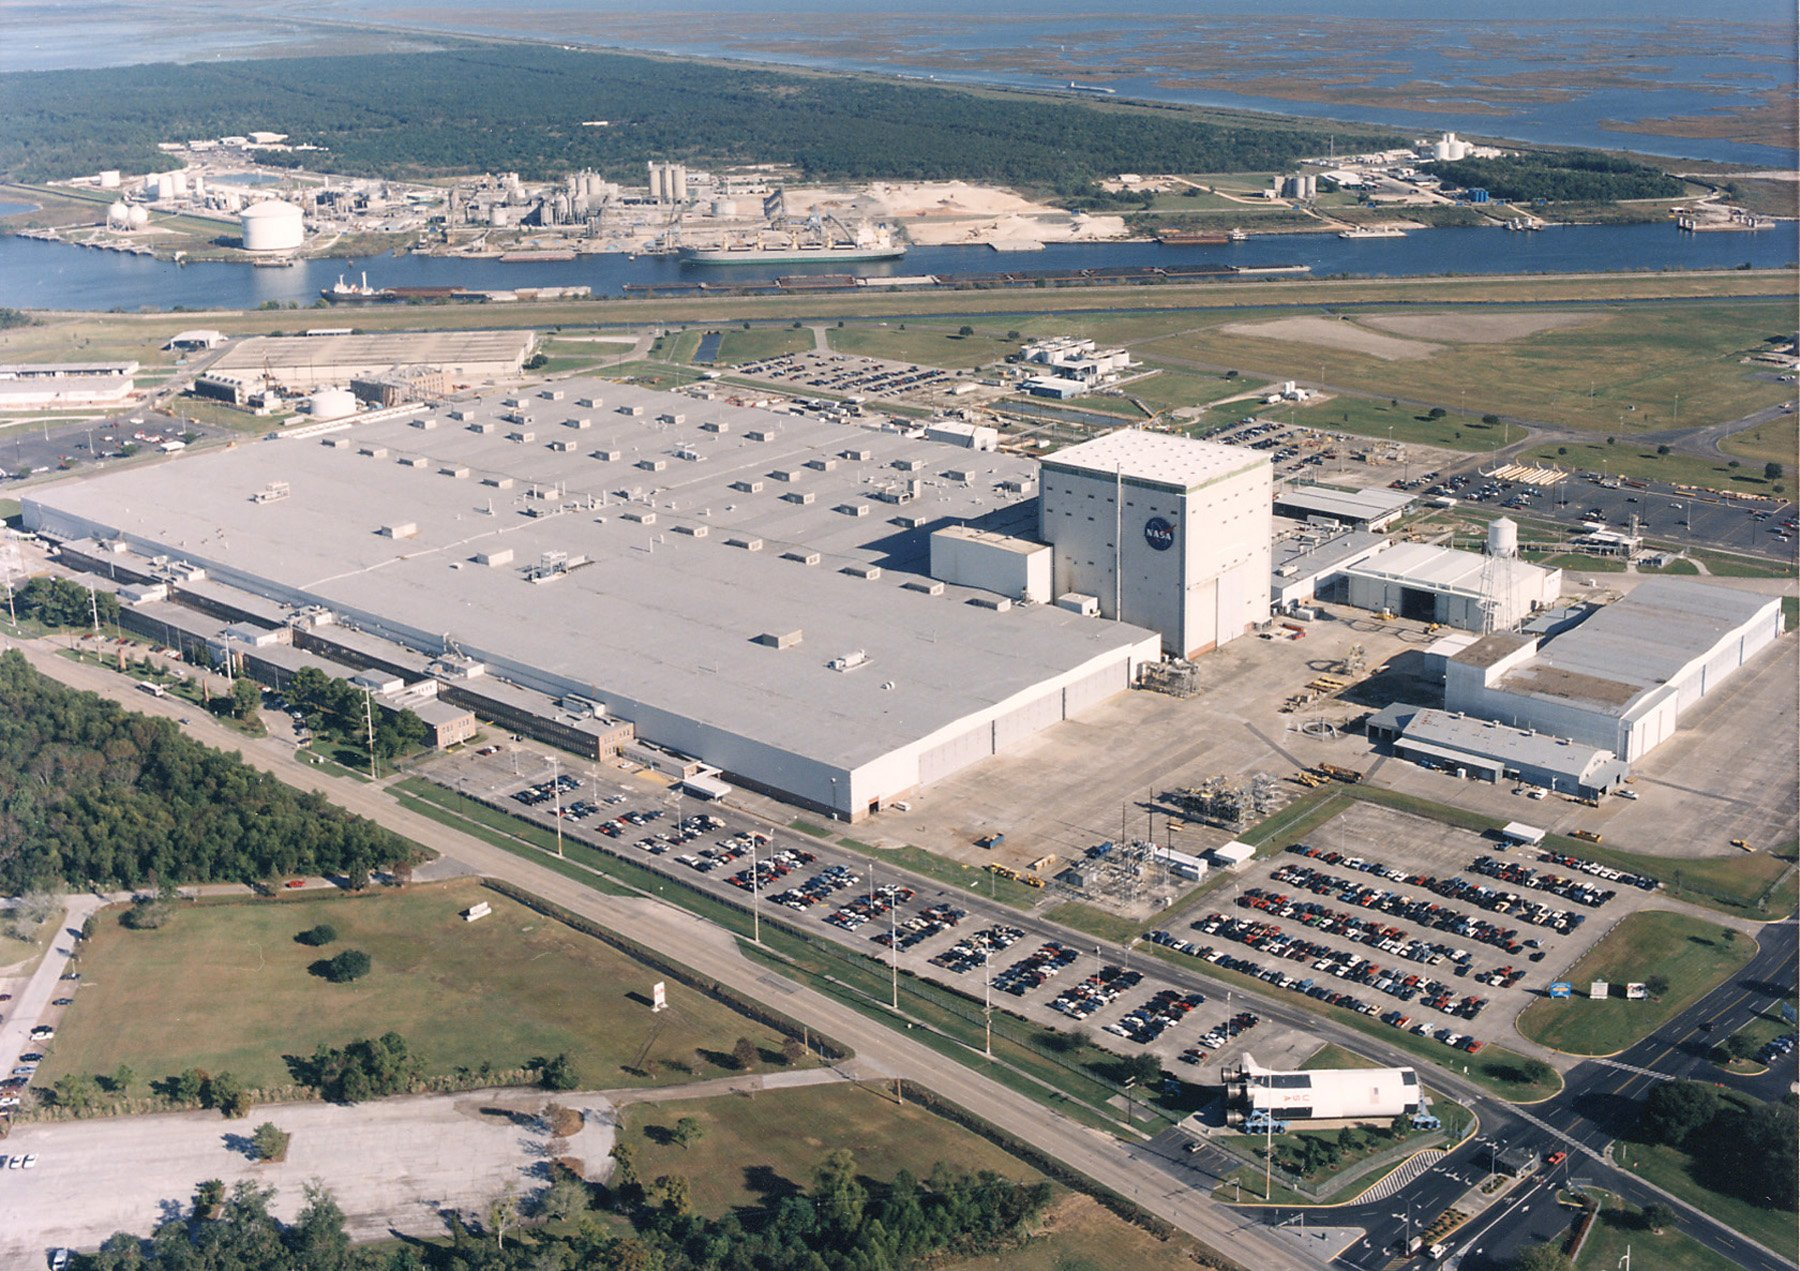 Nasa Aerial View Of Michoud Assembly Facility